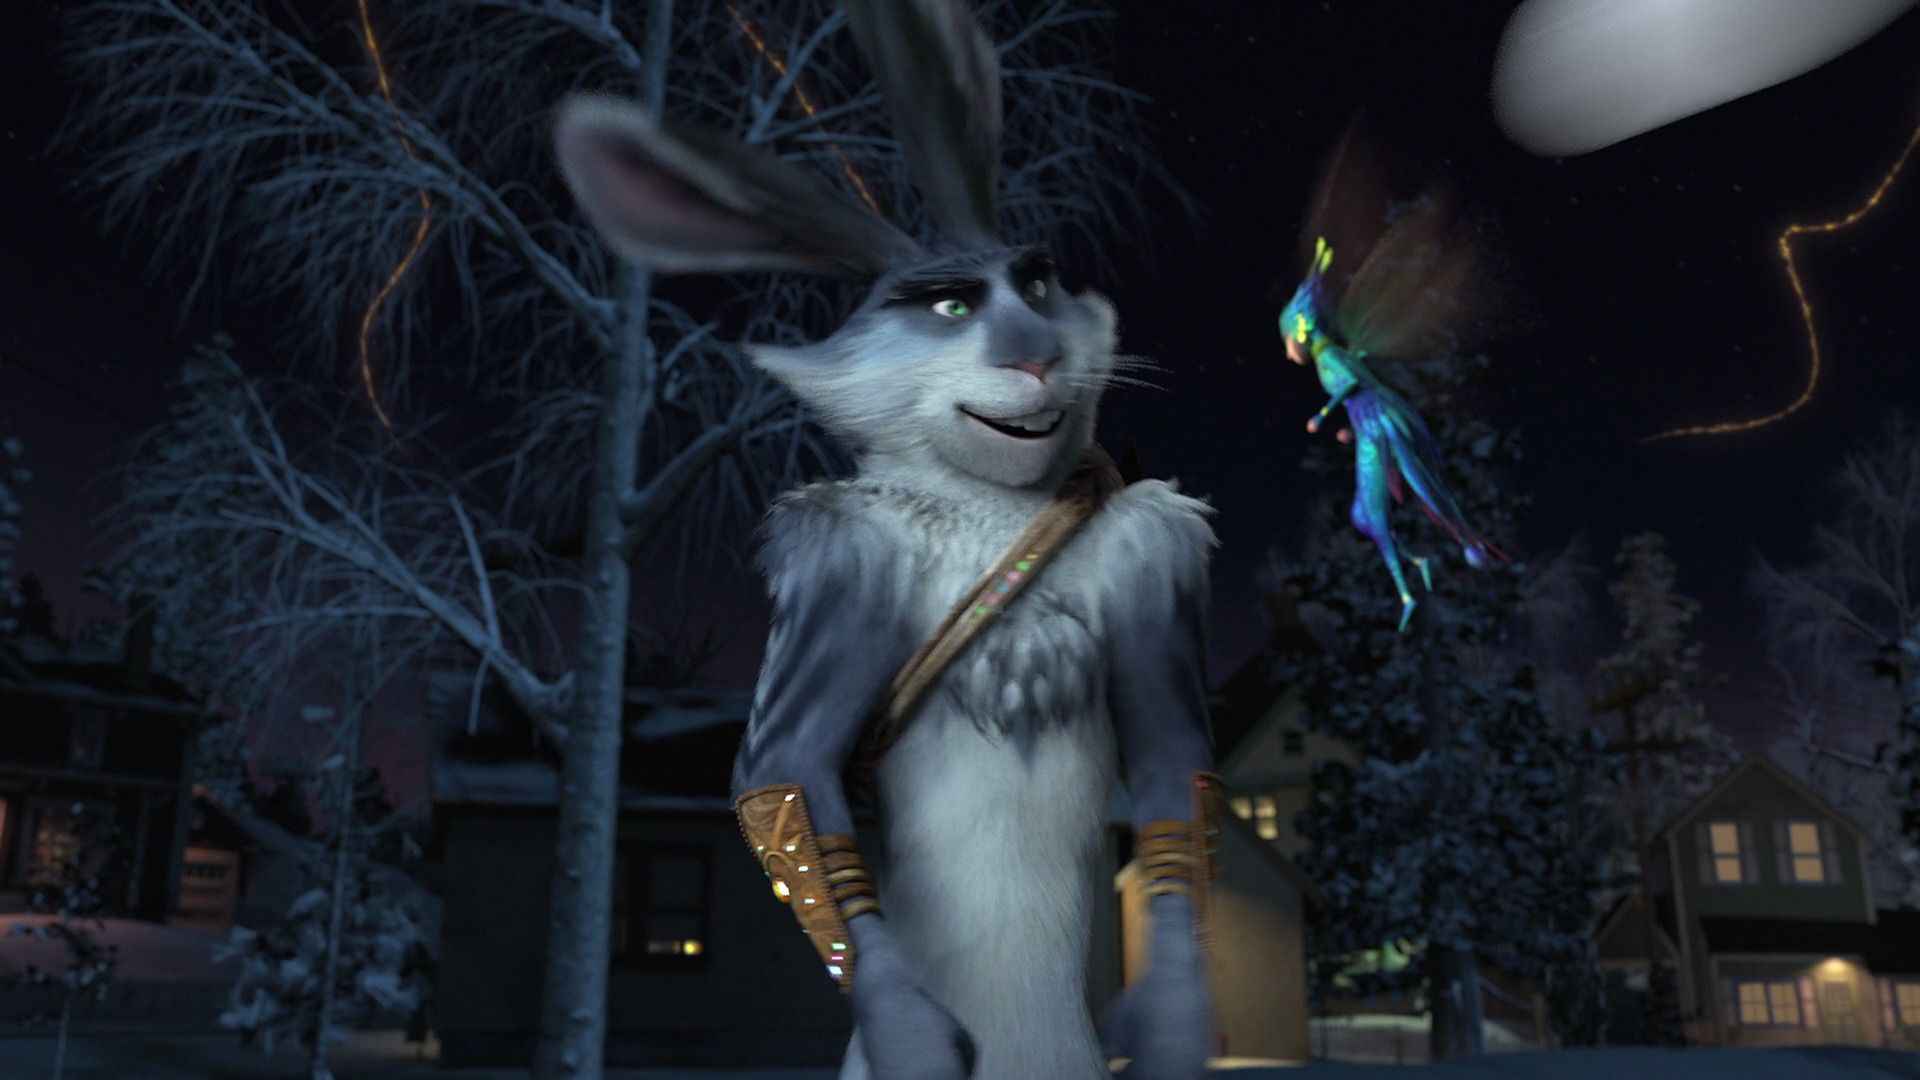 Rise of the guardians easter bunny bunnymund random photo rise of the guardians easter bunny bunnymund random photo altavistaventures Gallery